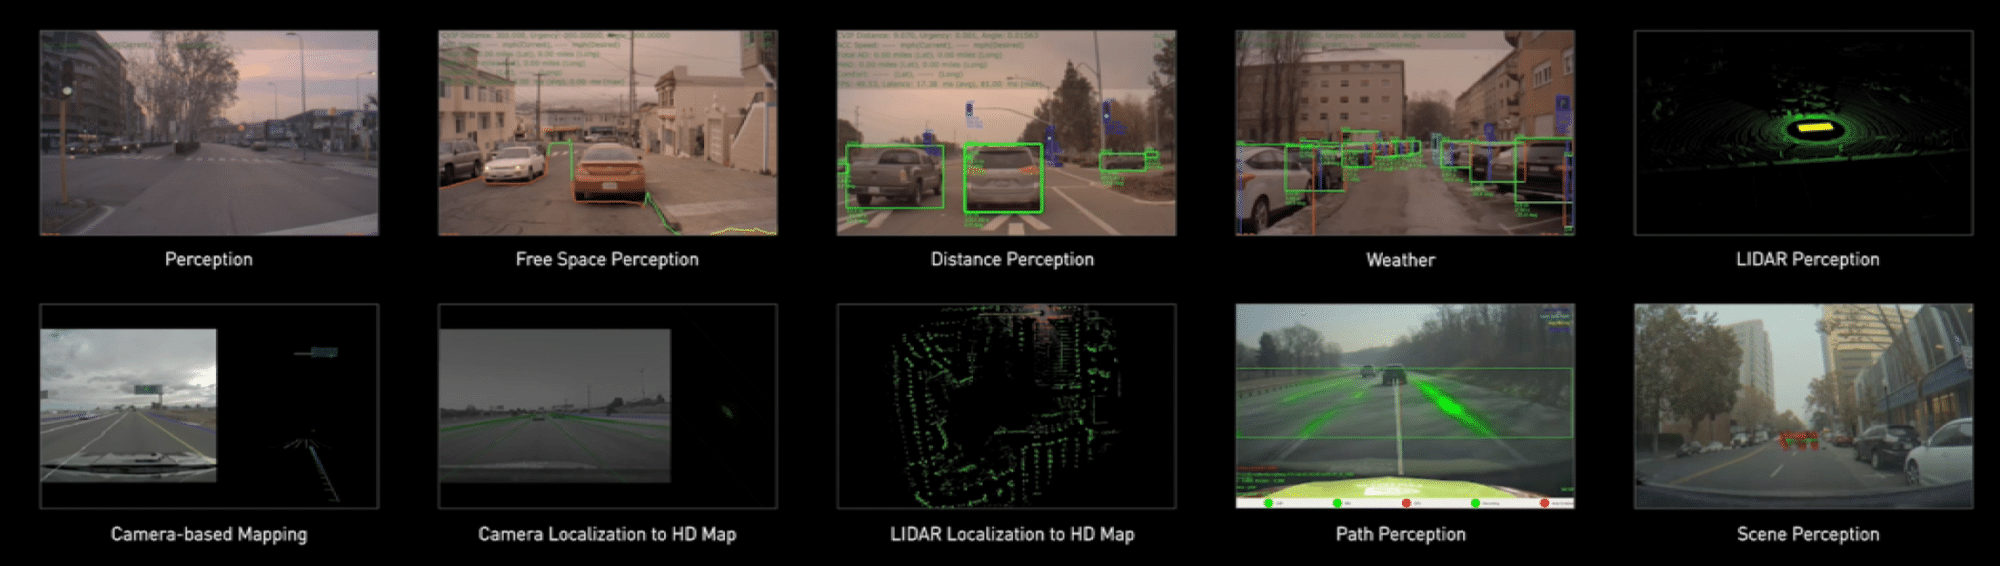 NVIDIA DRIVE delivers the high-performance required to simultaneously run the wide array of diverse deep neural networks needed to safely driving through urban environments.